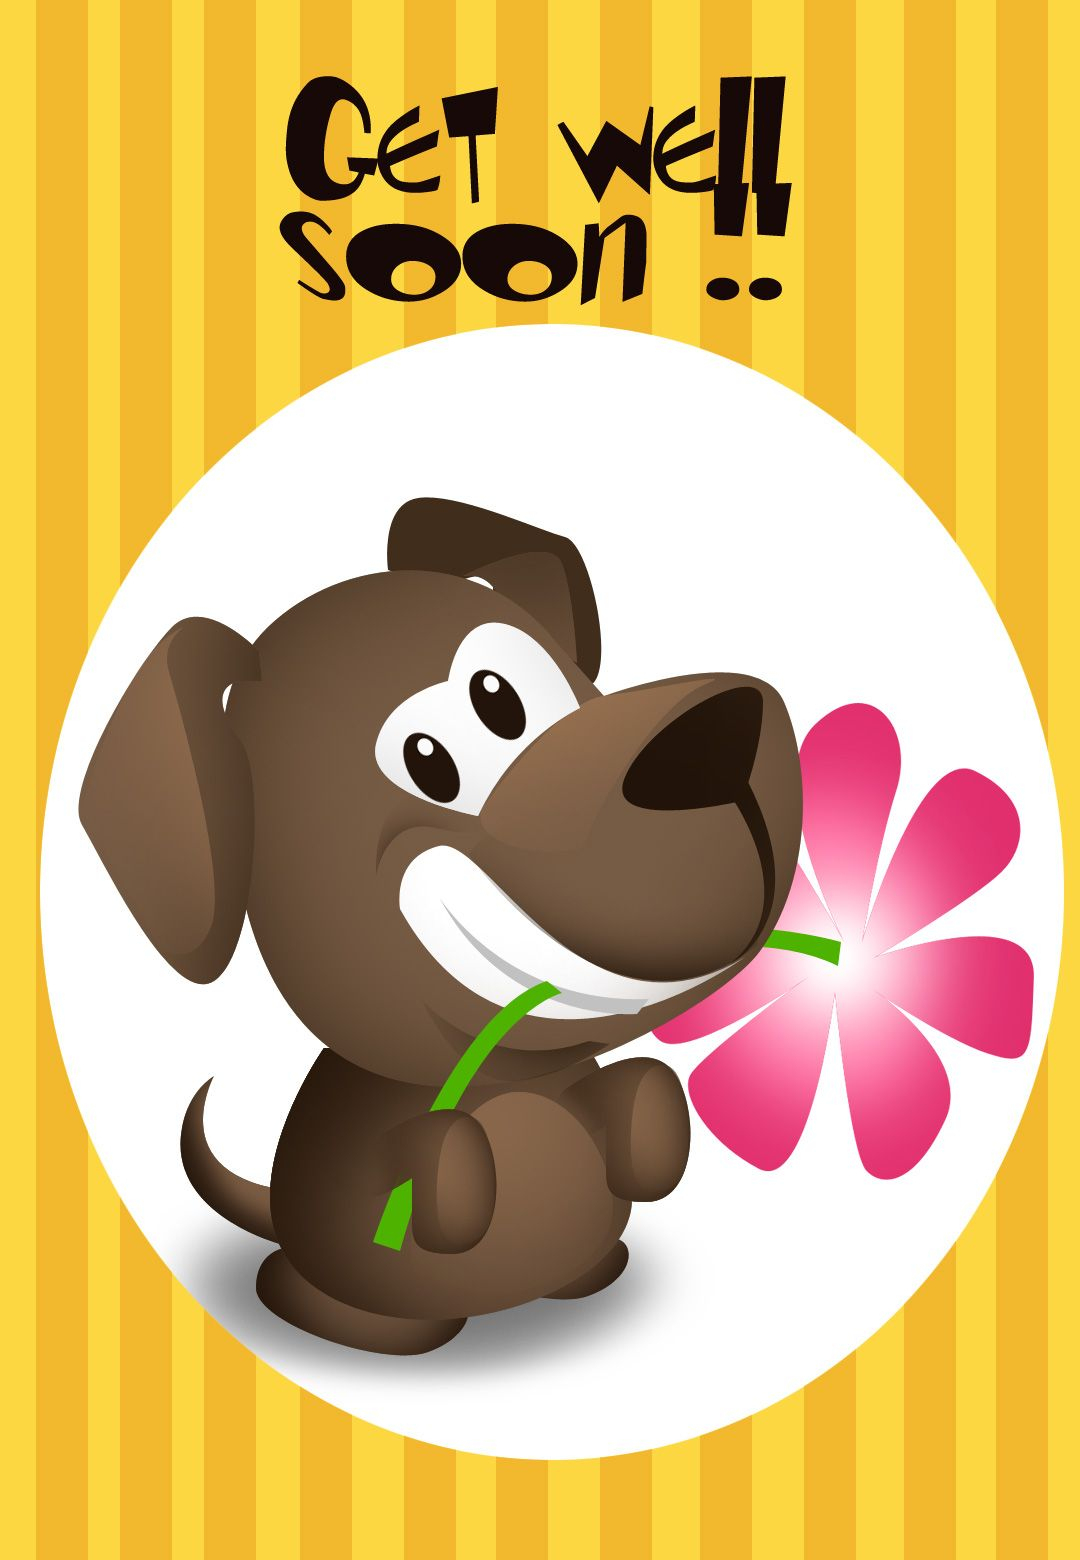 Get Well Soon Free Printable Get Well Soon Puppy Greeting Card - Free Printable Get Well Cards